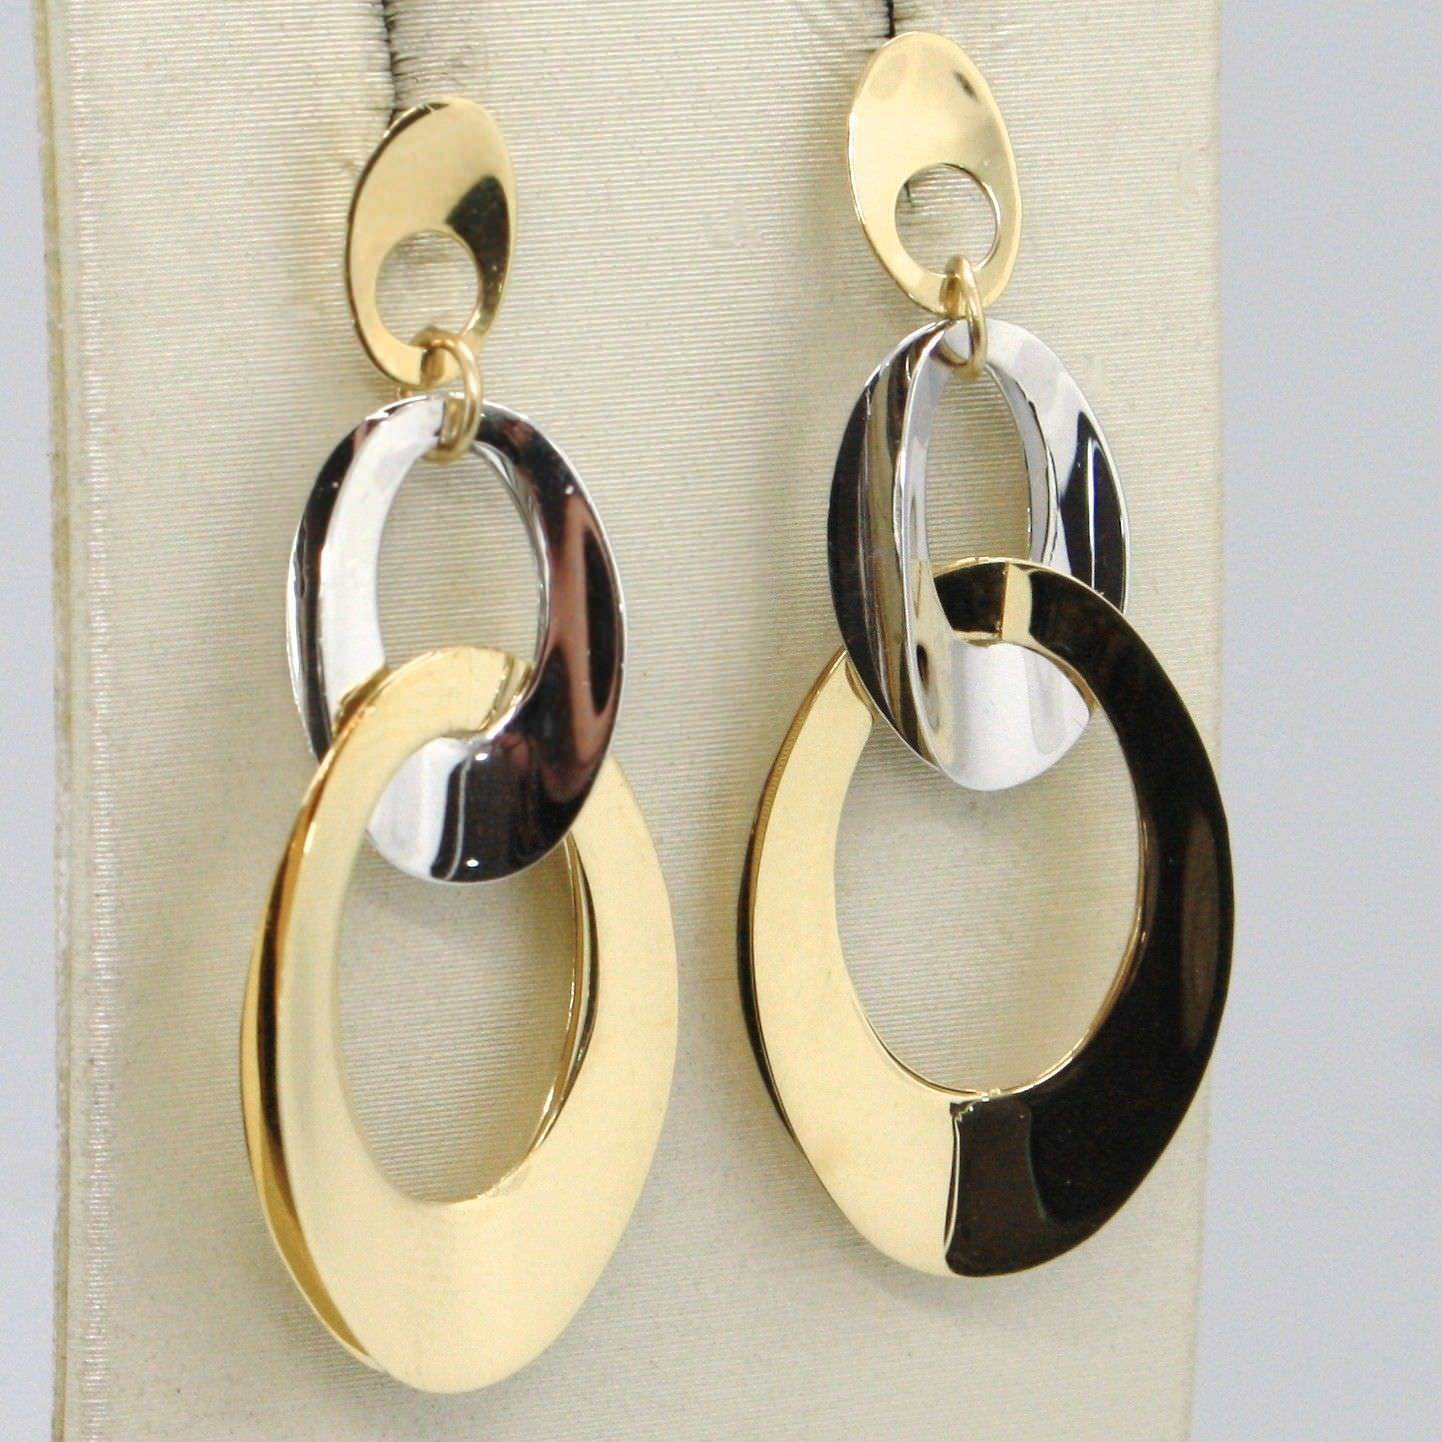 DROP EARRINGS WHITE GOLD AND YELLOW 750 18K POLISHED DISC MADE IN ITALY